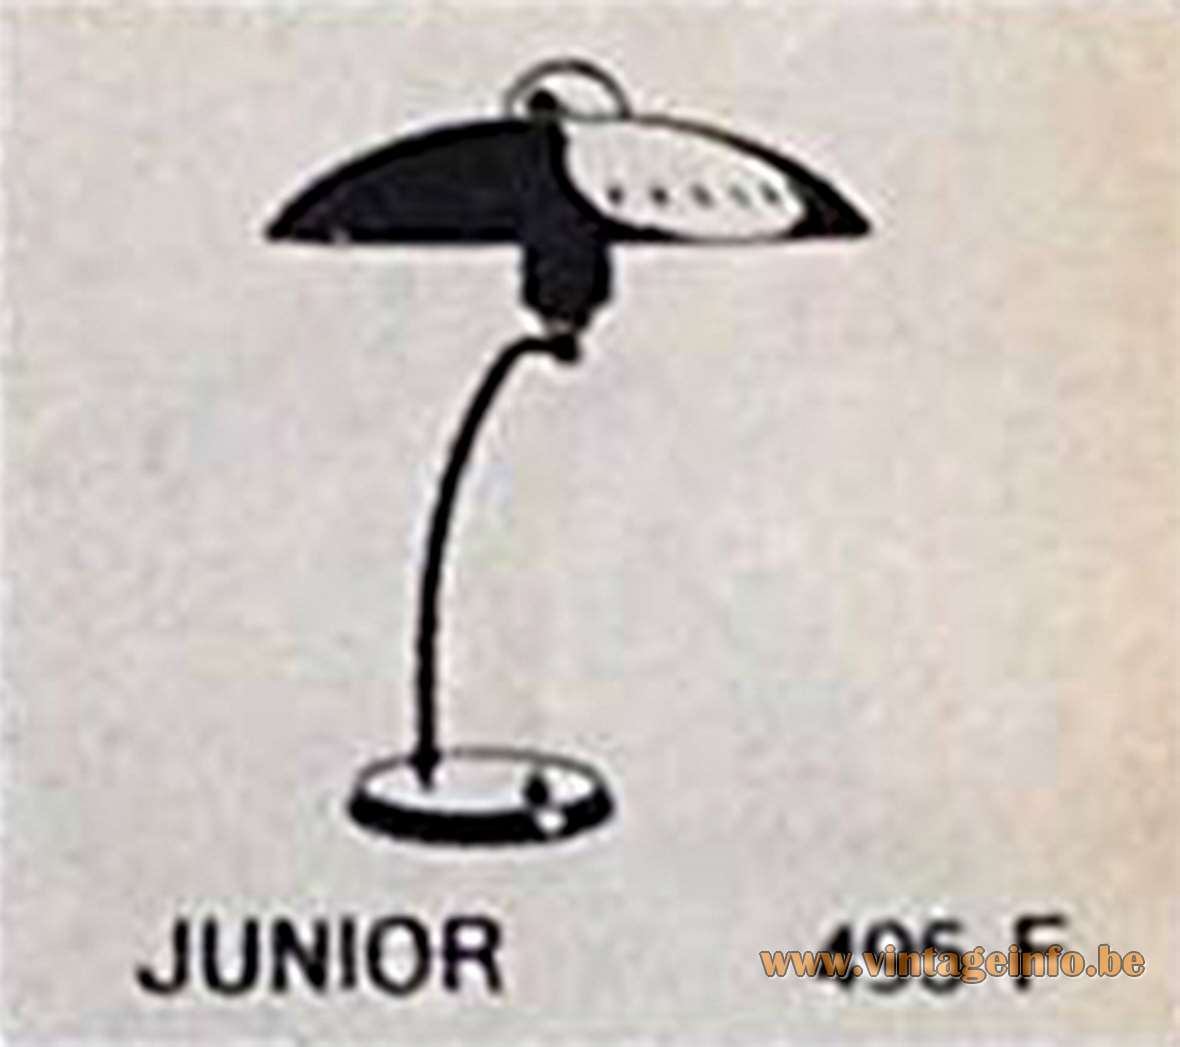 Philips Junior Desk Light pub